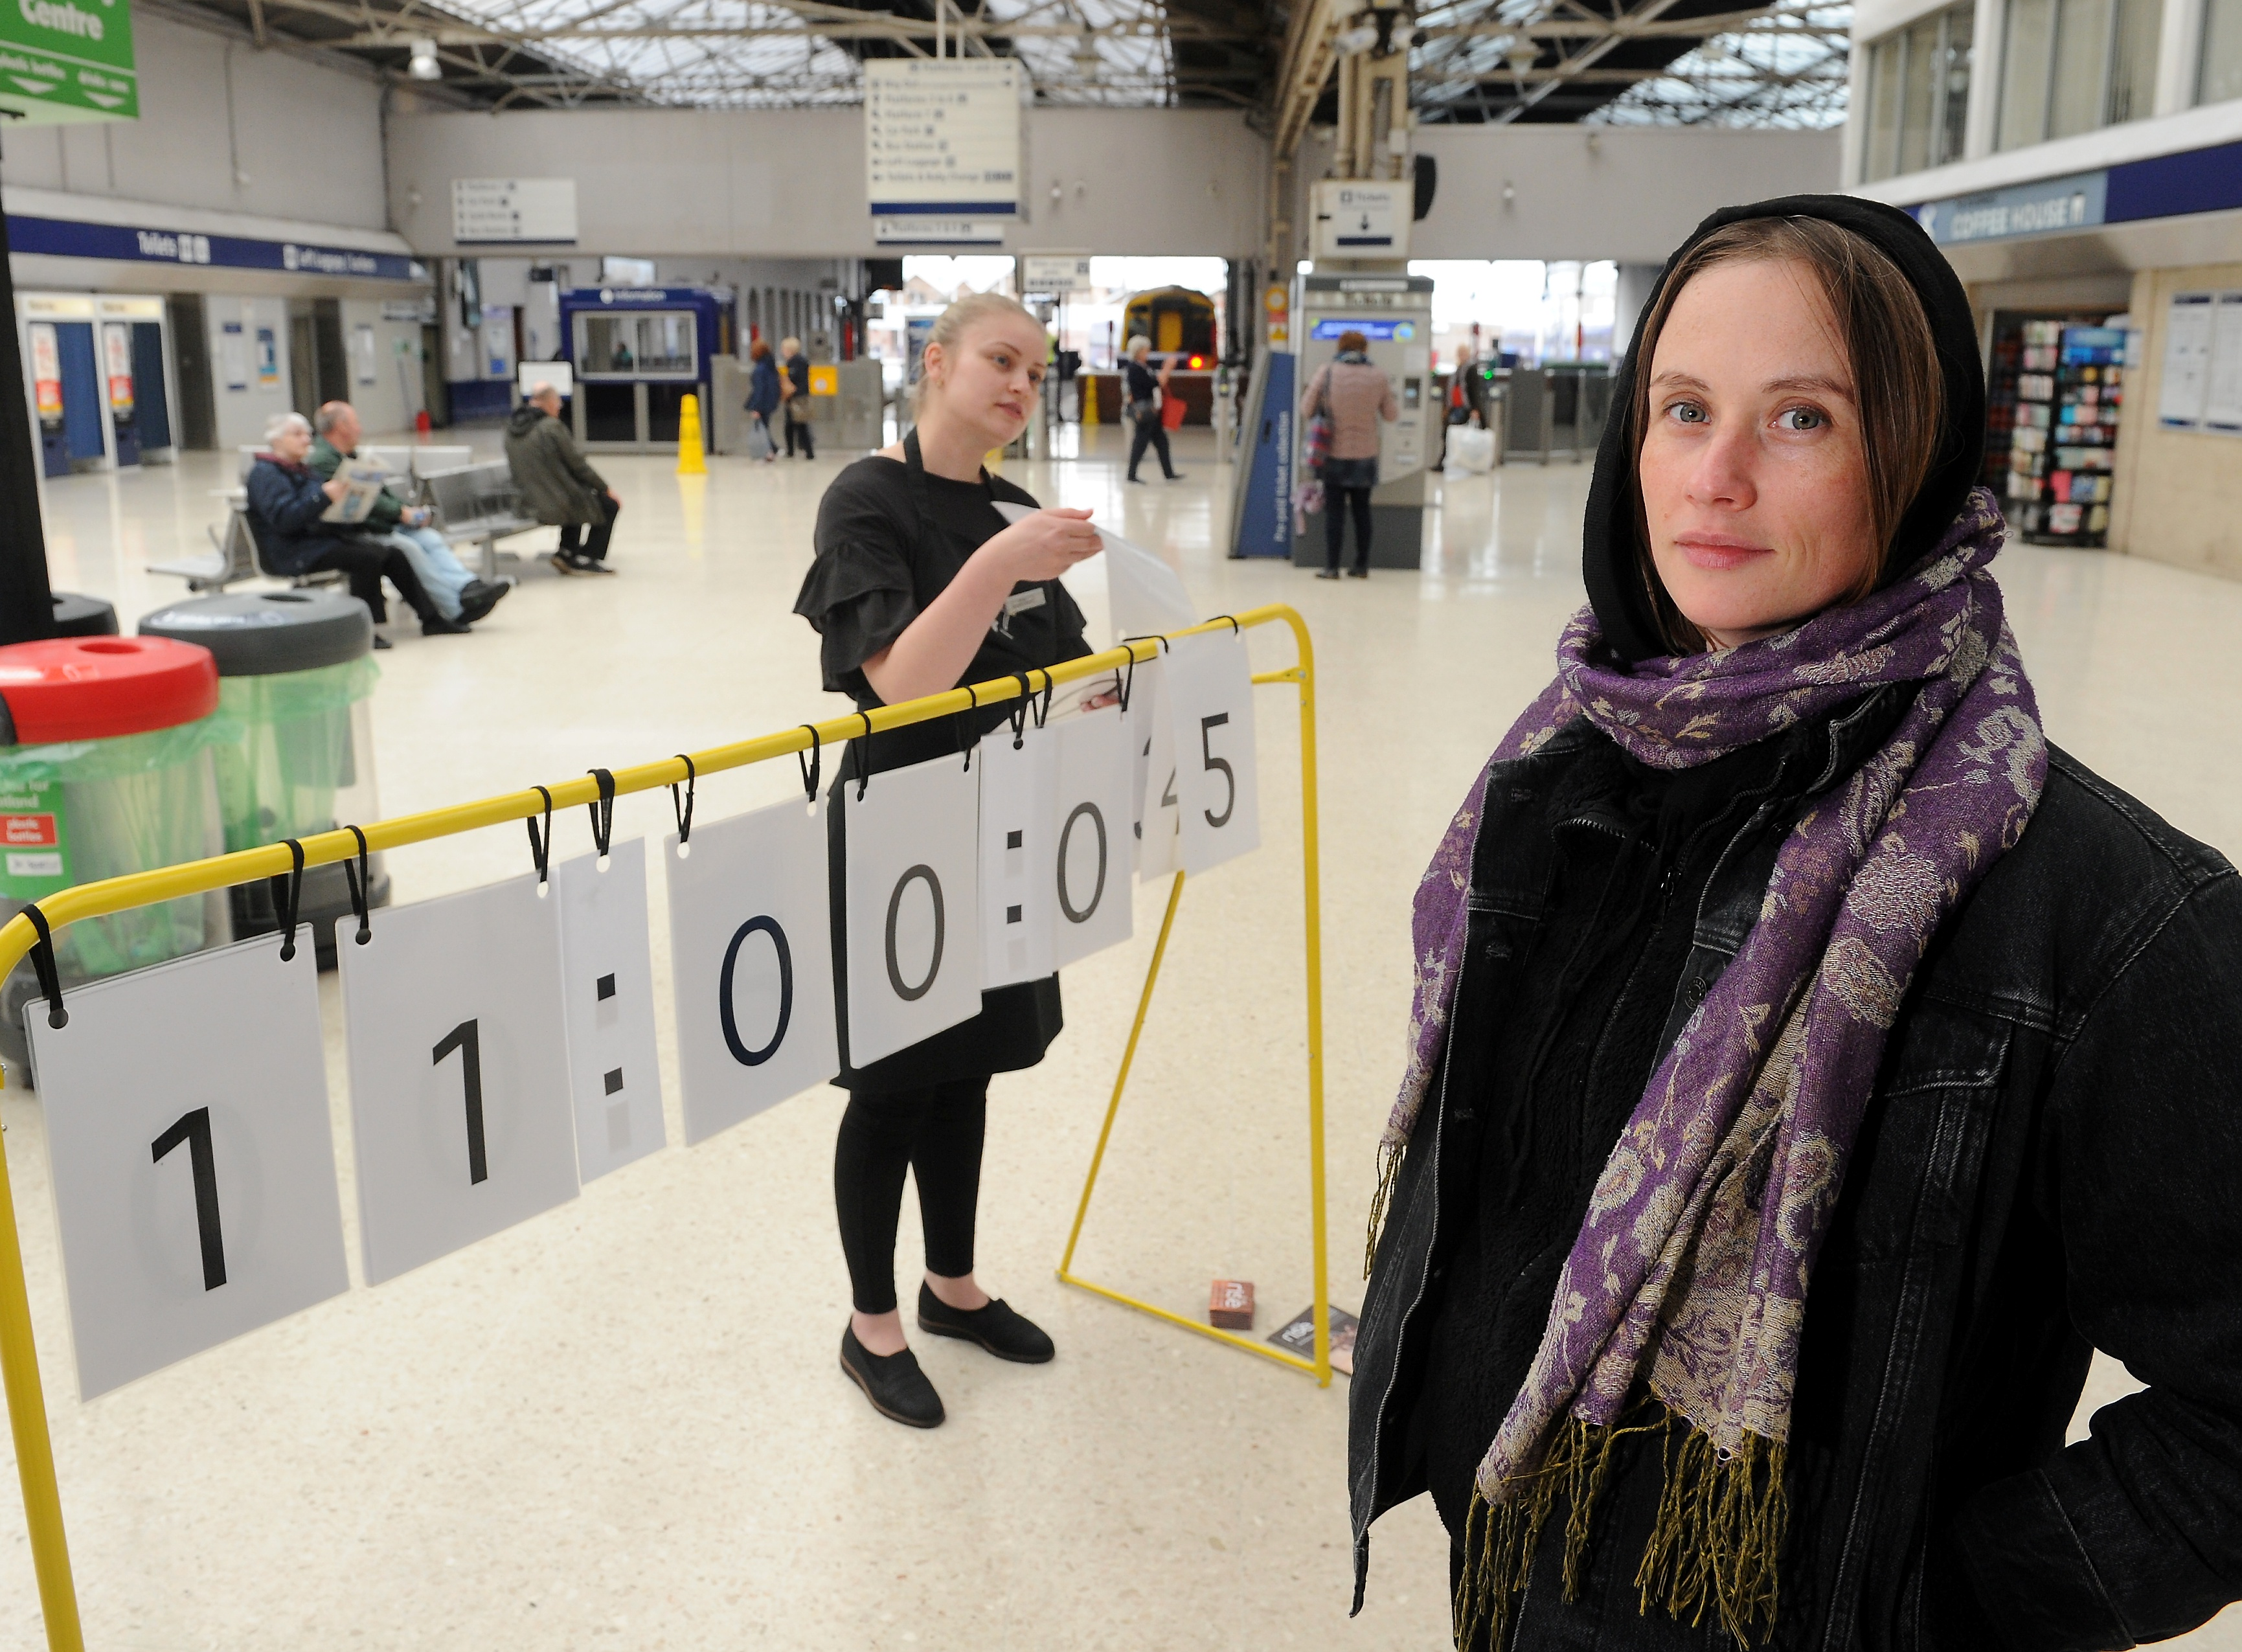 Artist Janine Harrington and member of the public Alexandra Cristache try to keep time with the human powered digital clock on display in Inverness Railway Station yesterday. Picture by Sandy McCook.